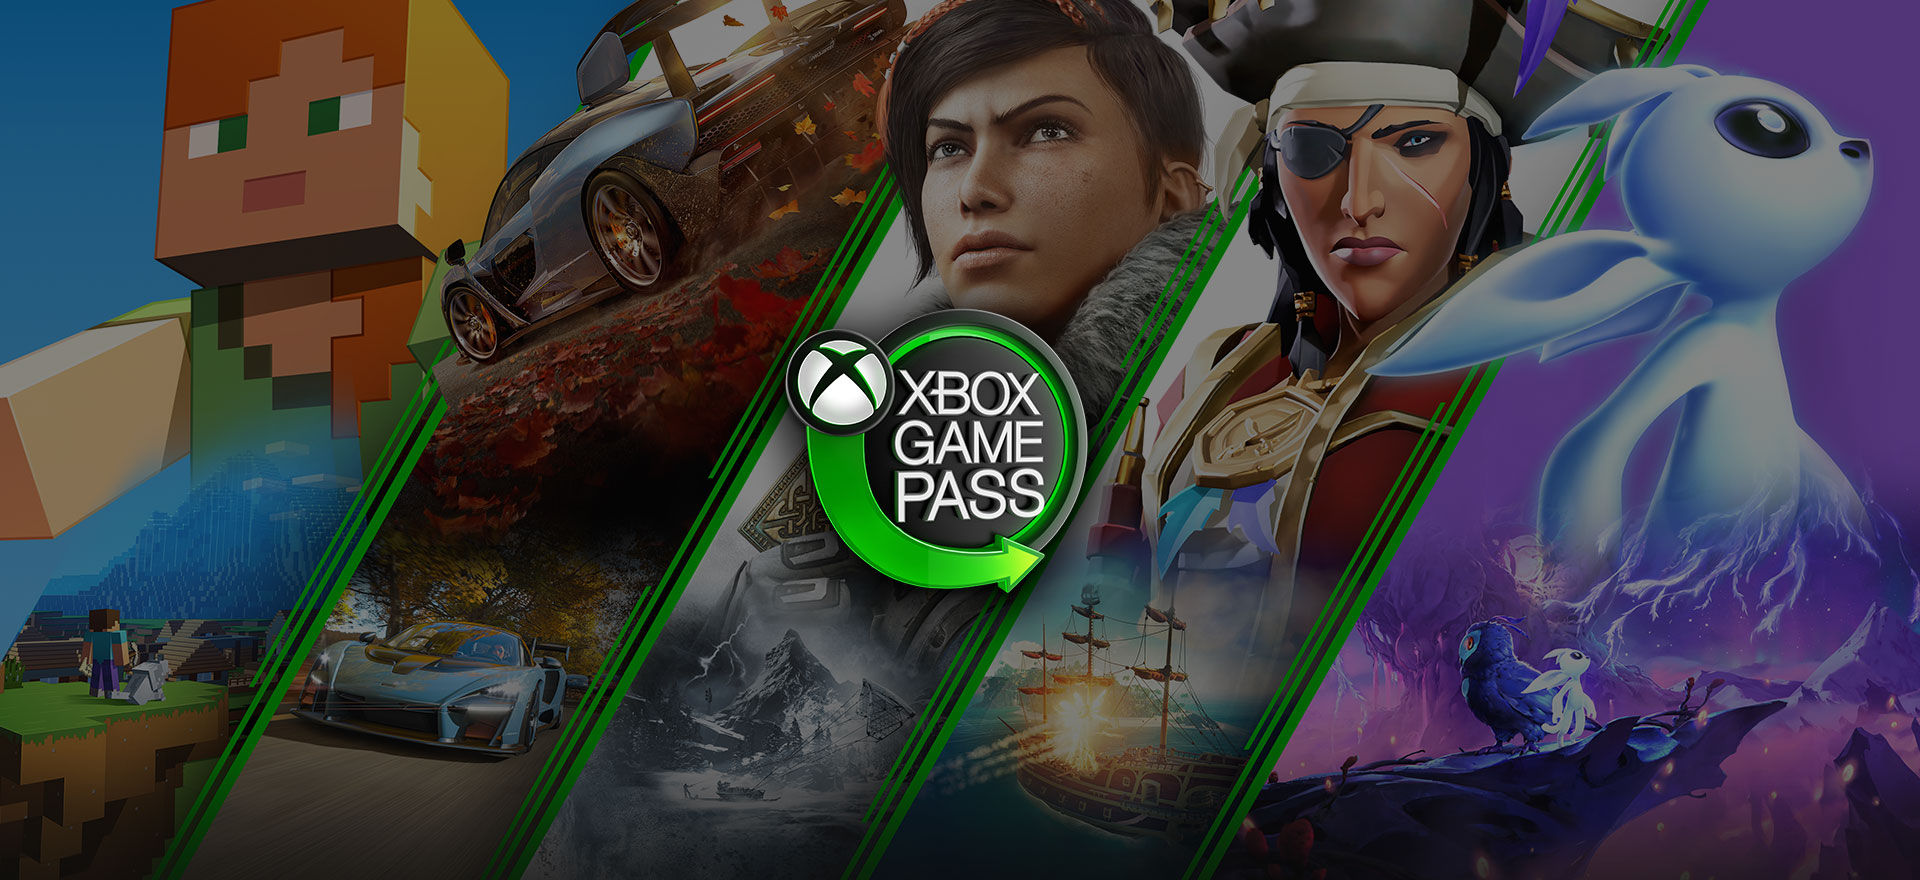 Play games like Tomb Raider, Halo and Gears 5 with Xbox Game Pass